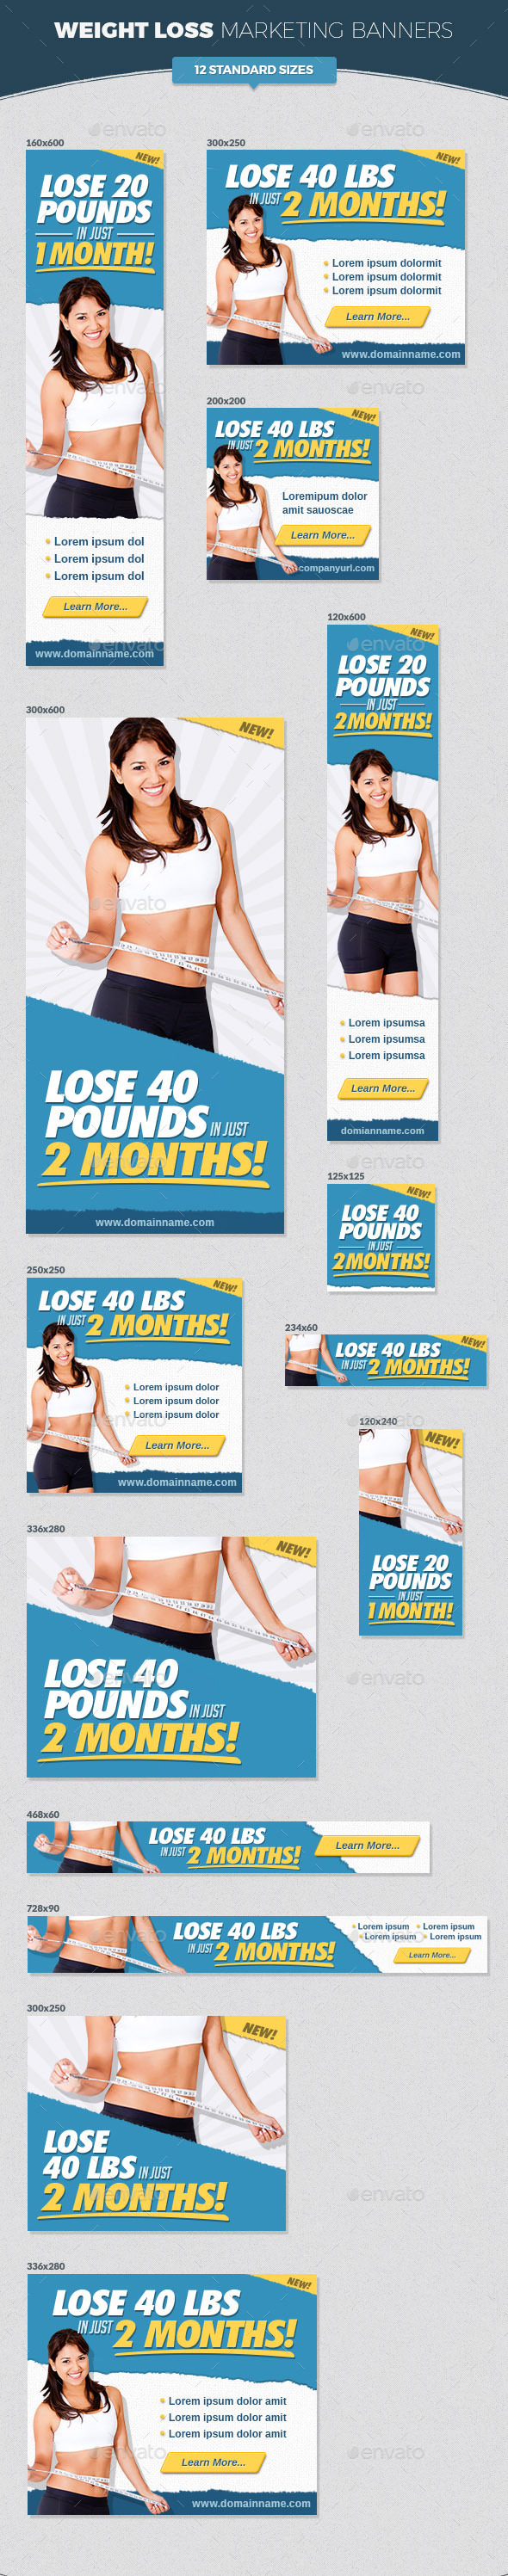 GraphicRiver Weight Loss Marketing Banners 11453114